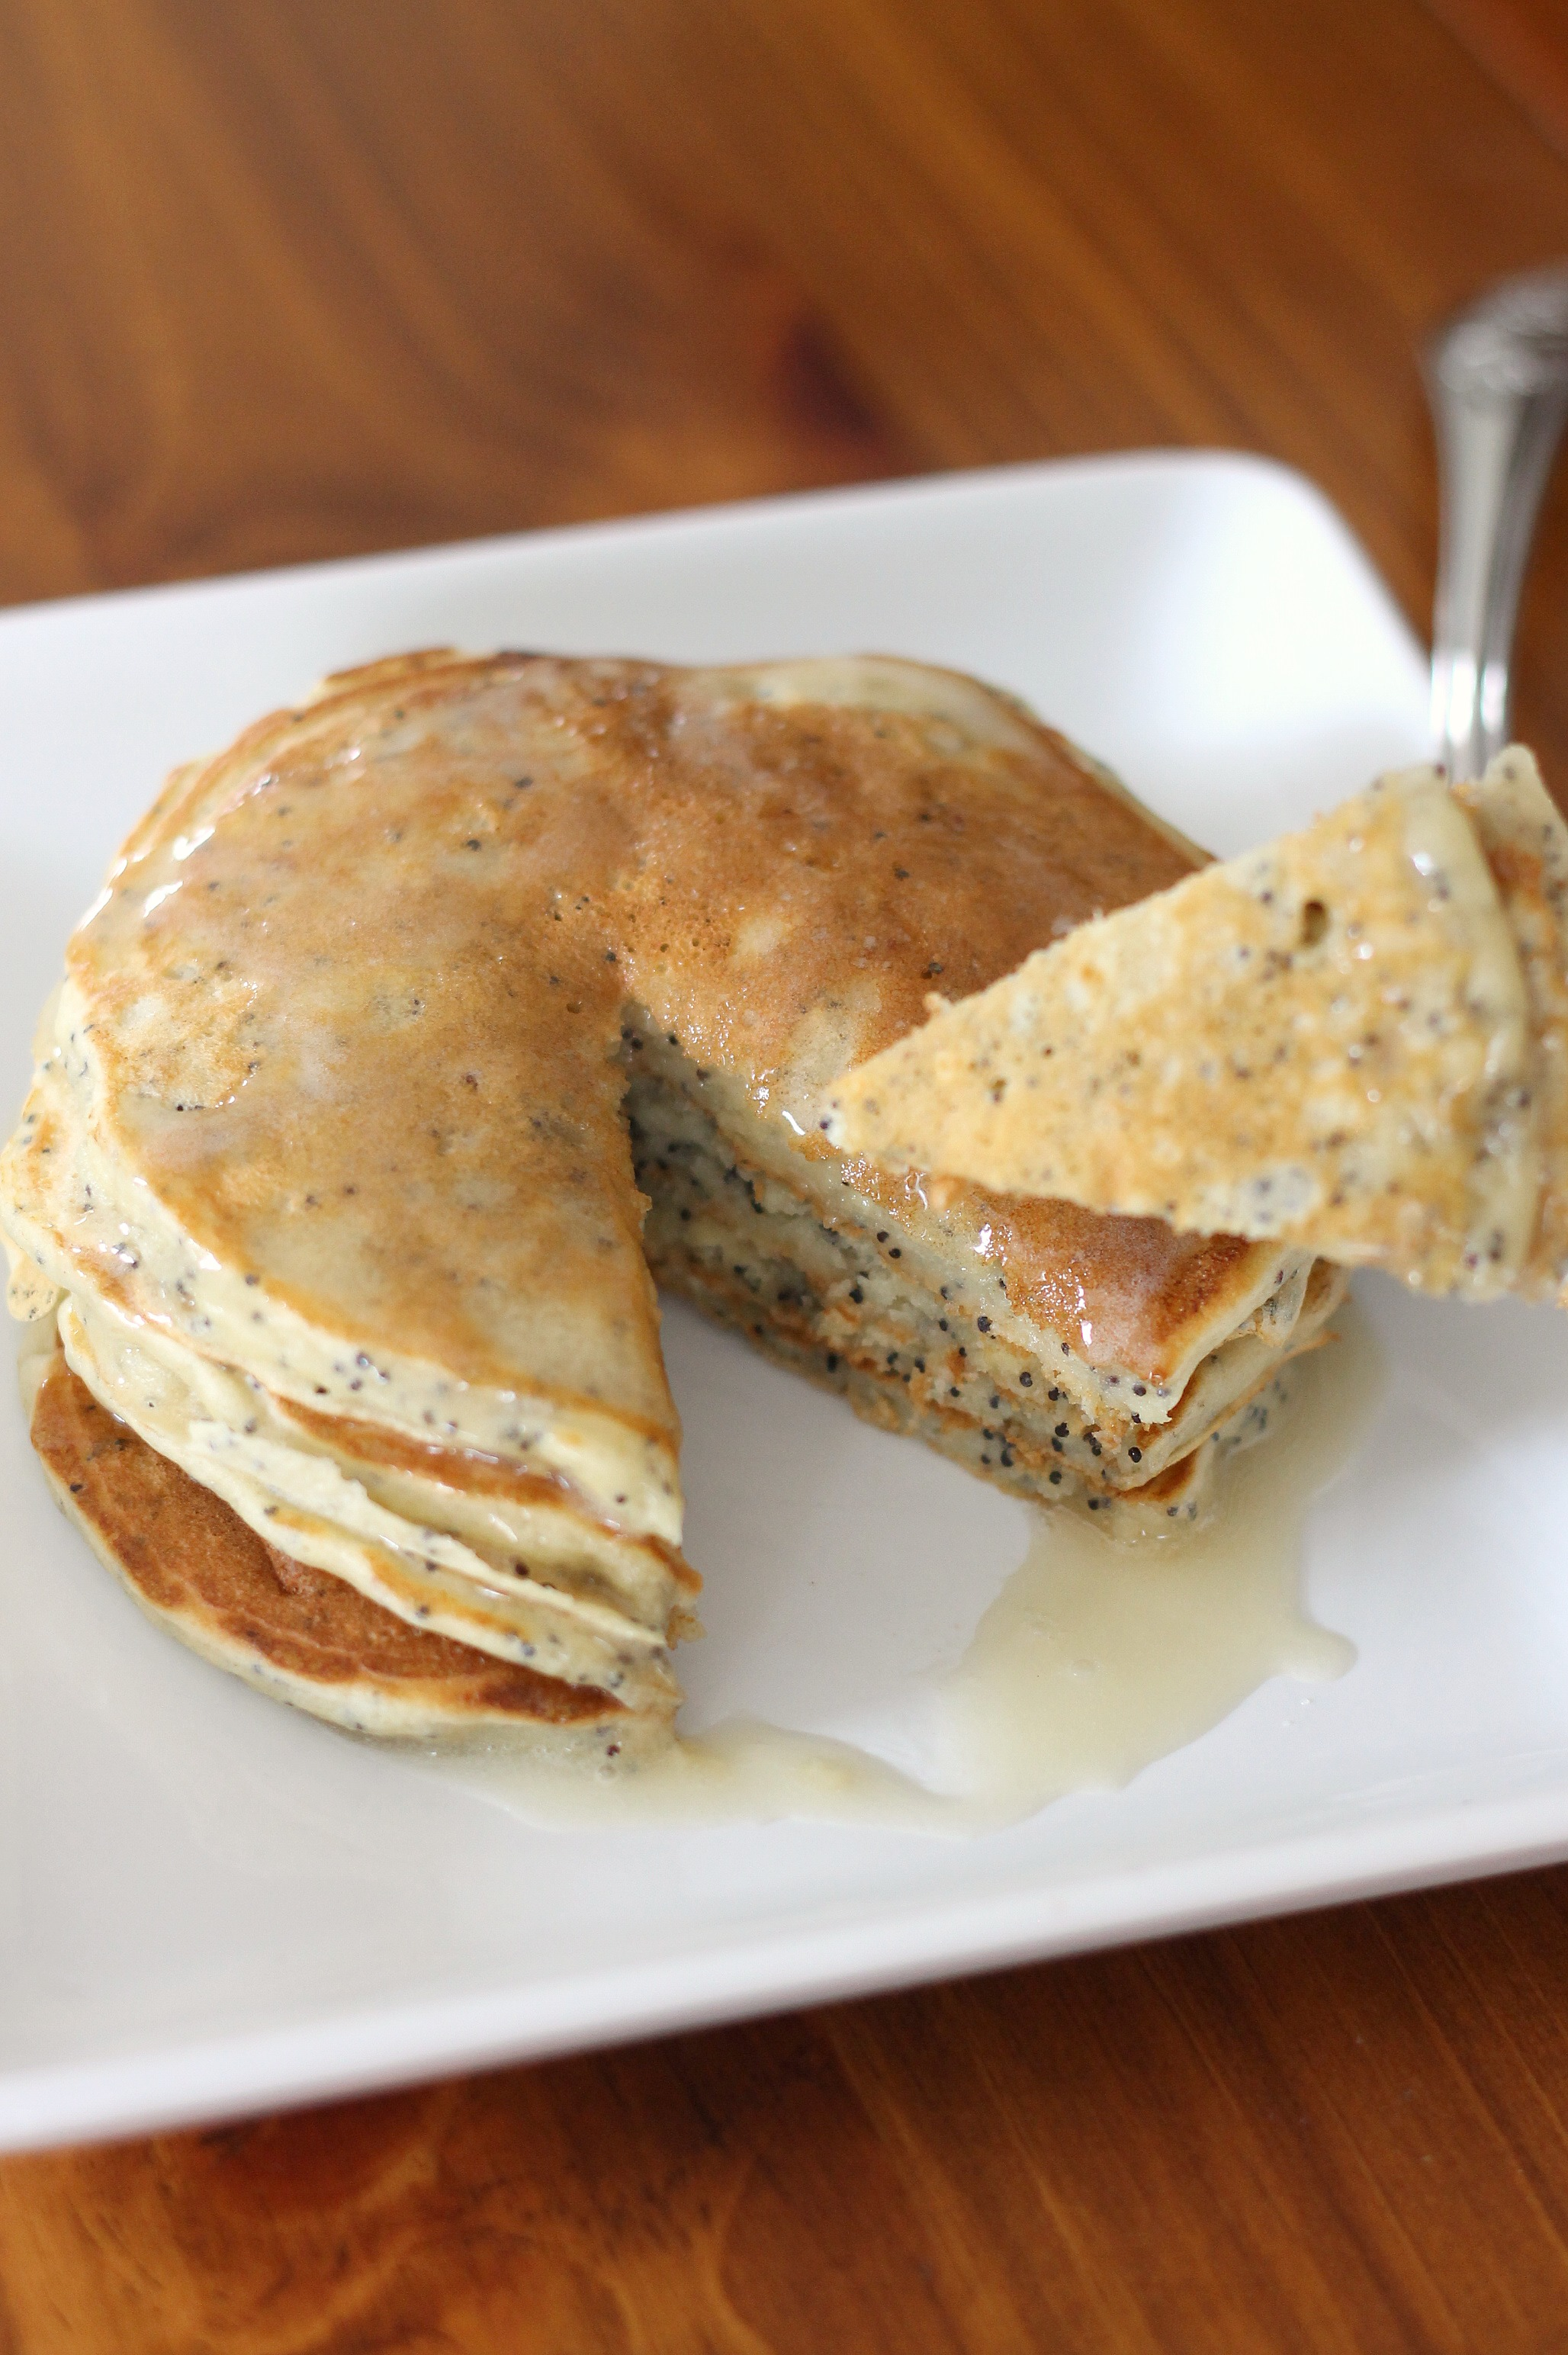 Almond Poppy Seed Pancakes with Almond Cream Sauce | We Like Two Cook